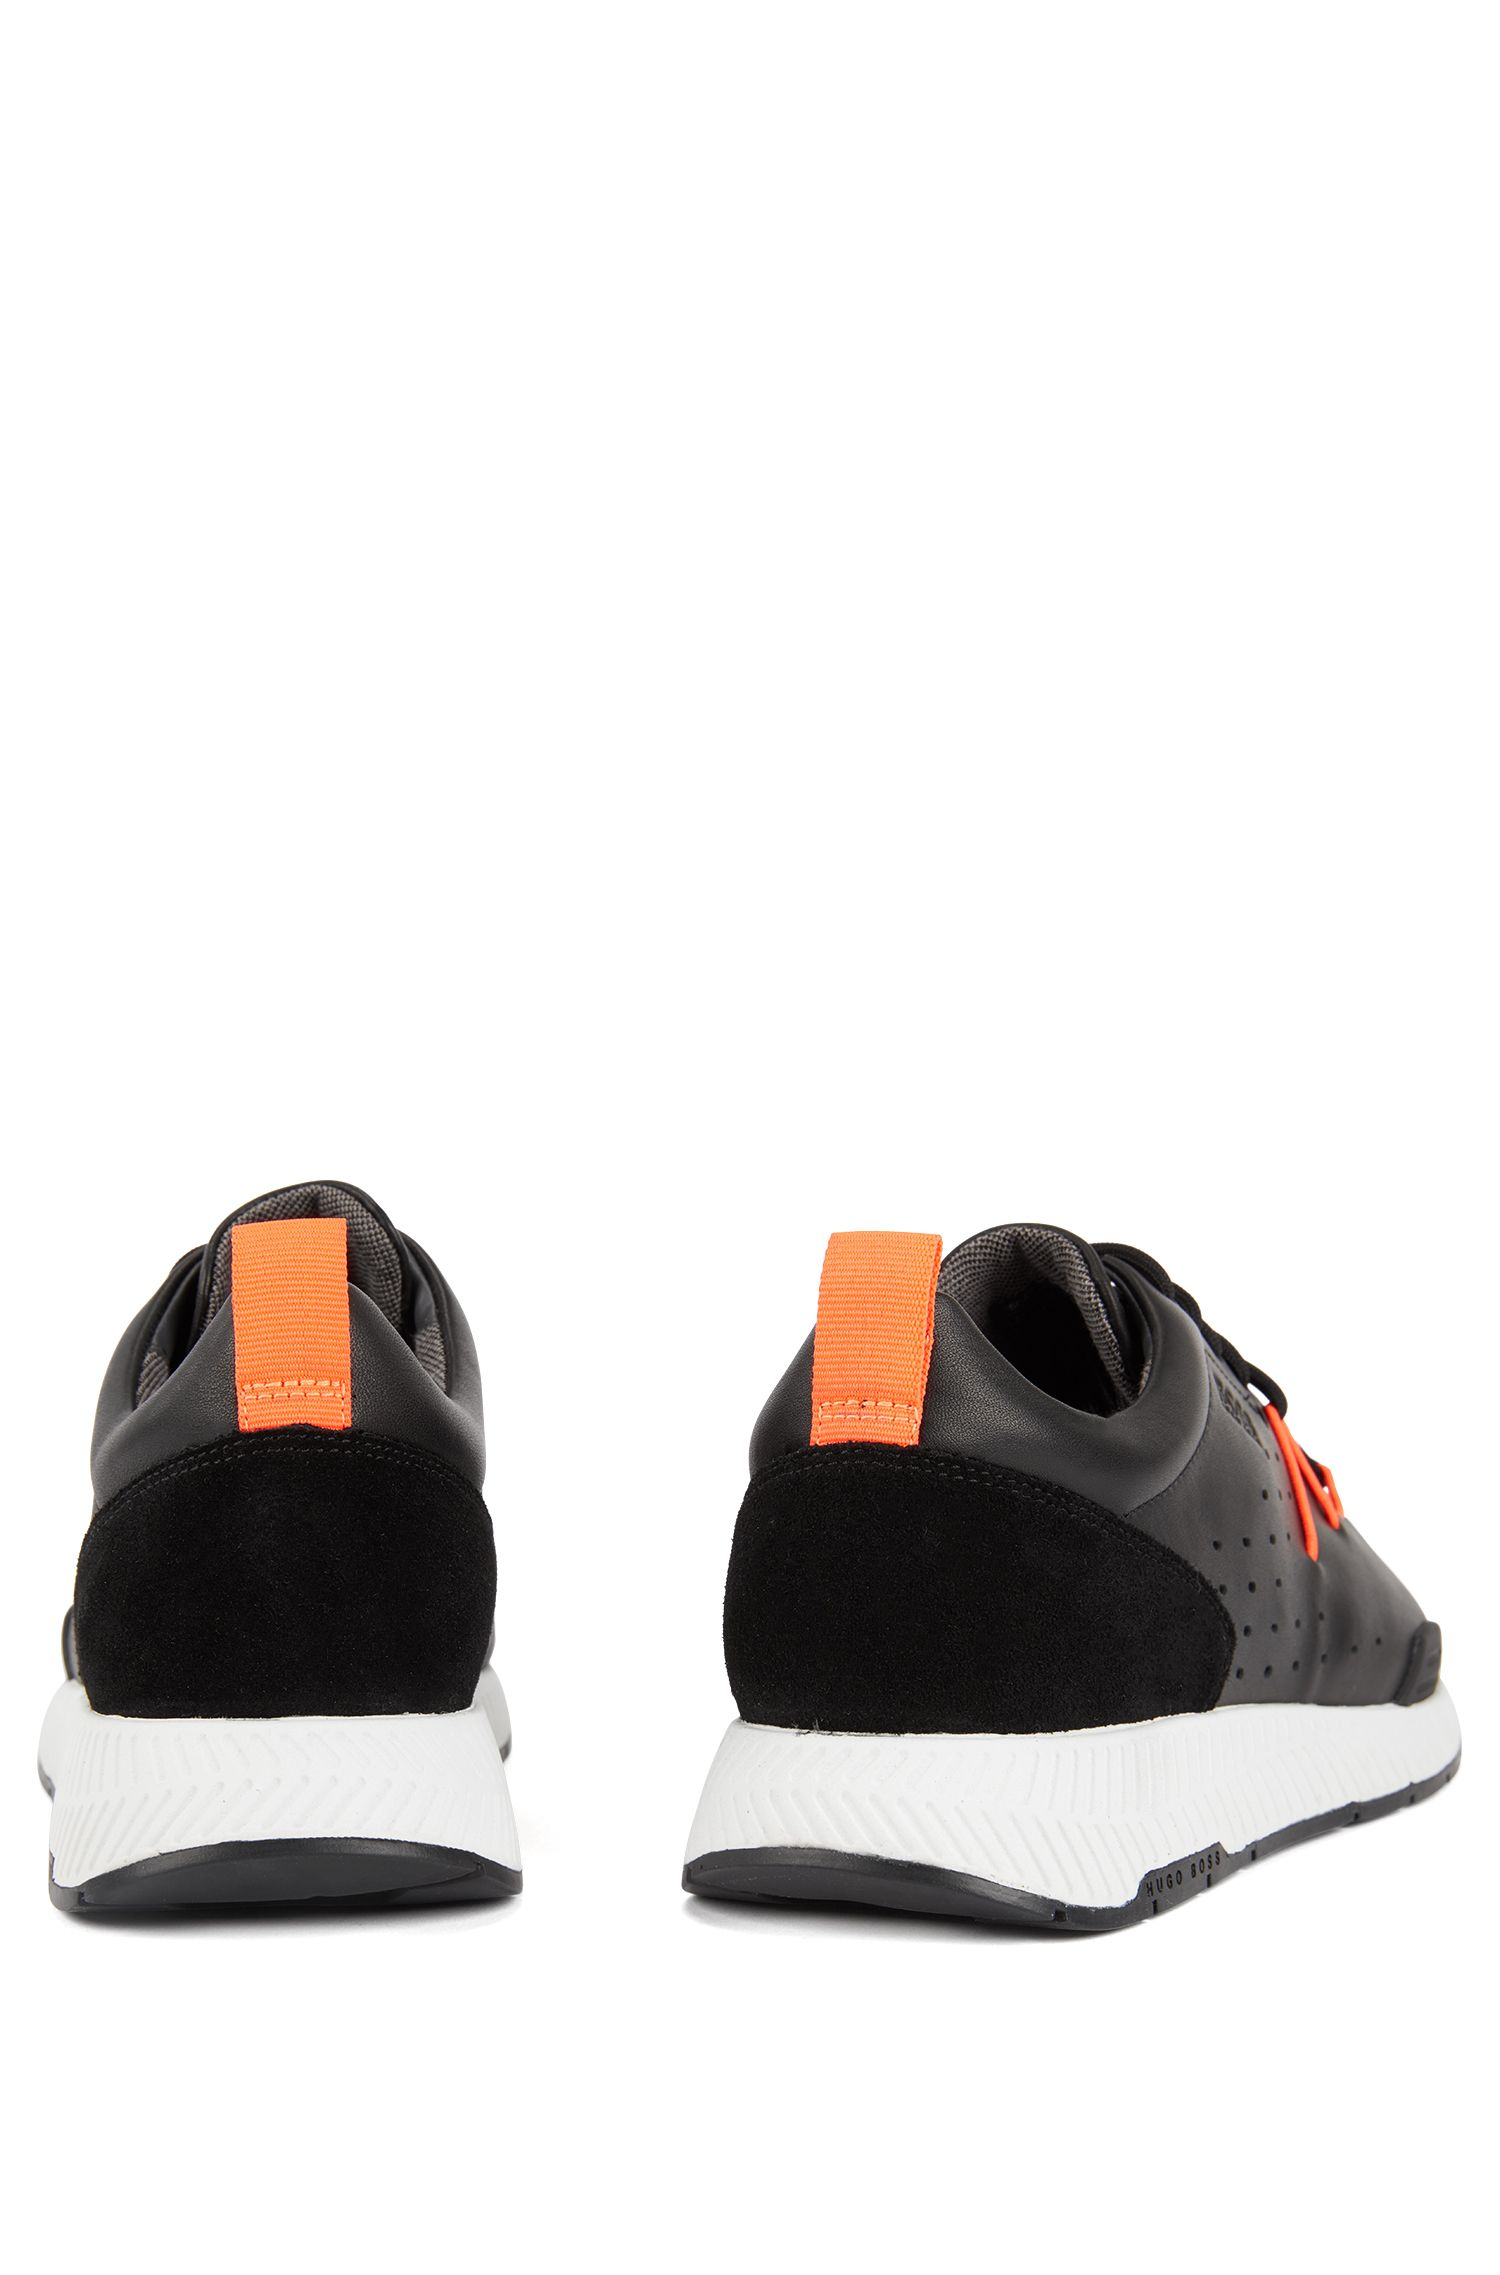 Running-inspired trainers in leather with perforated uppers, Black